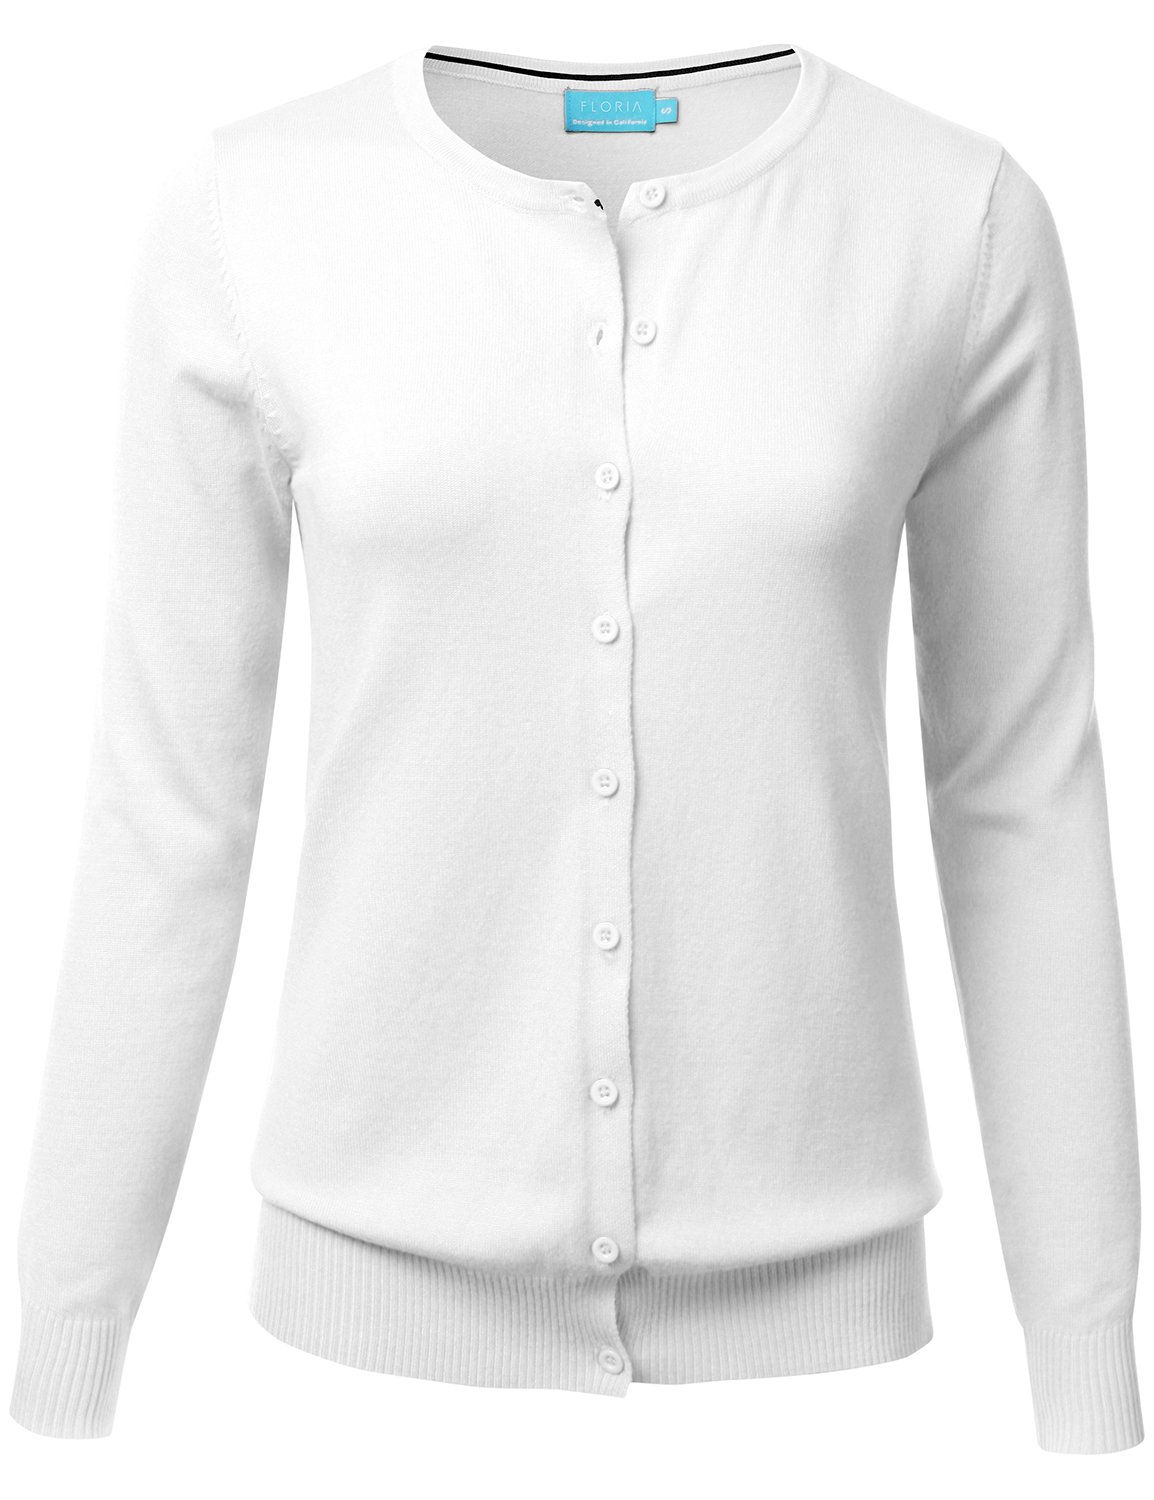 FLORIA Women Button Down Crew Neck Long Sleeve Soft Knit Cardigan Sweater White L